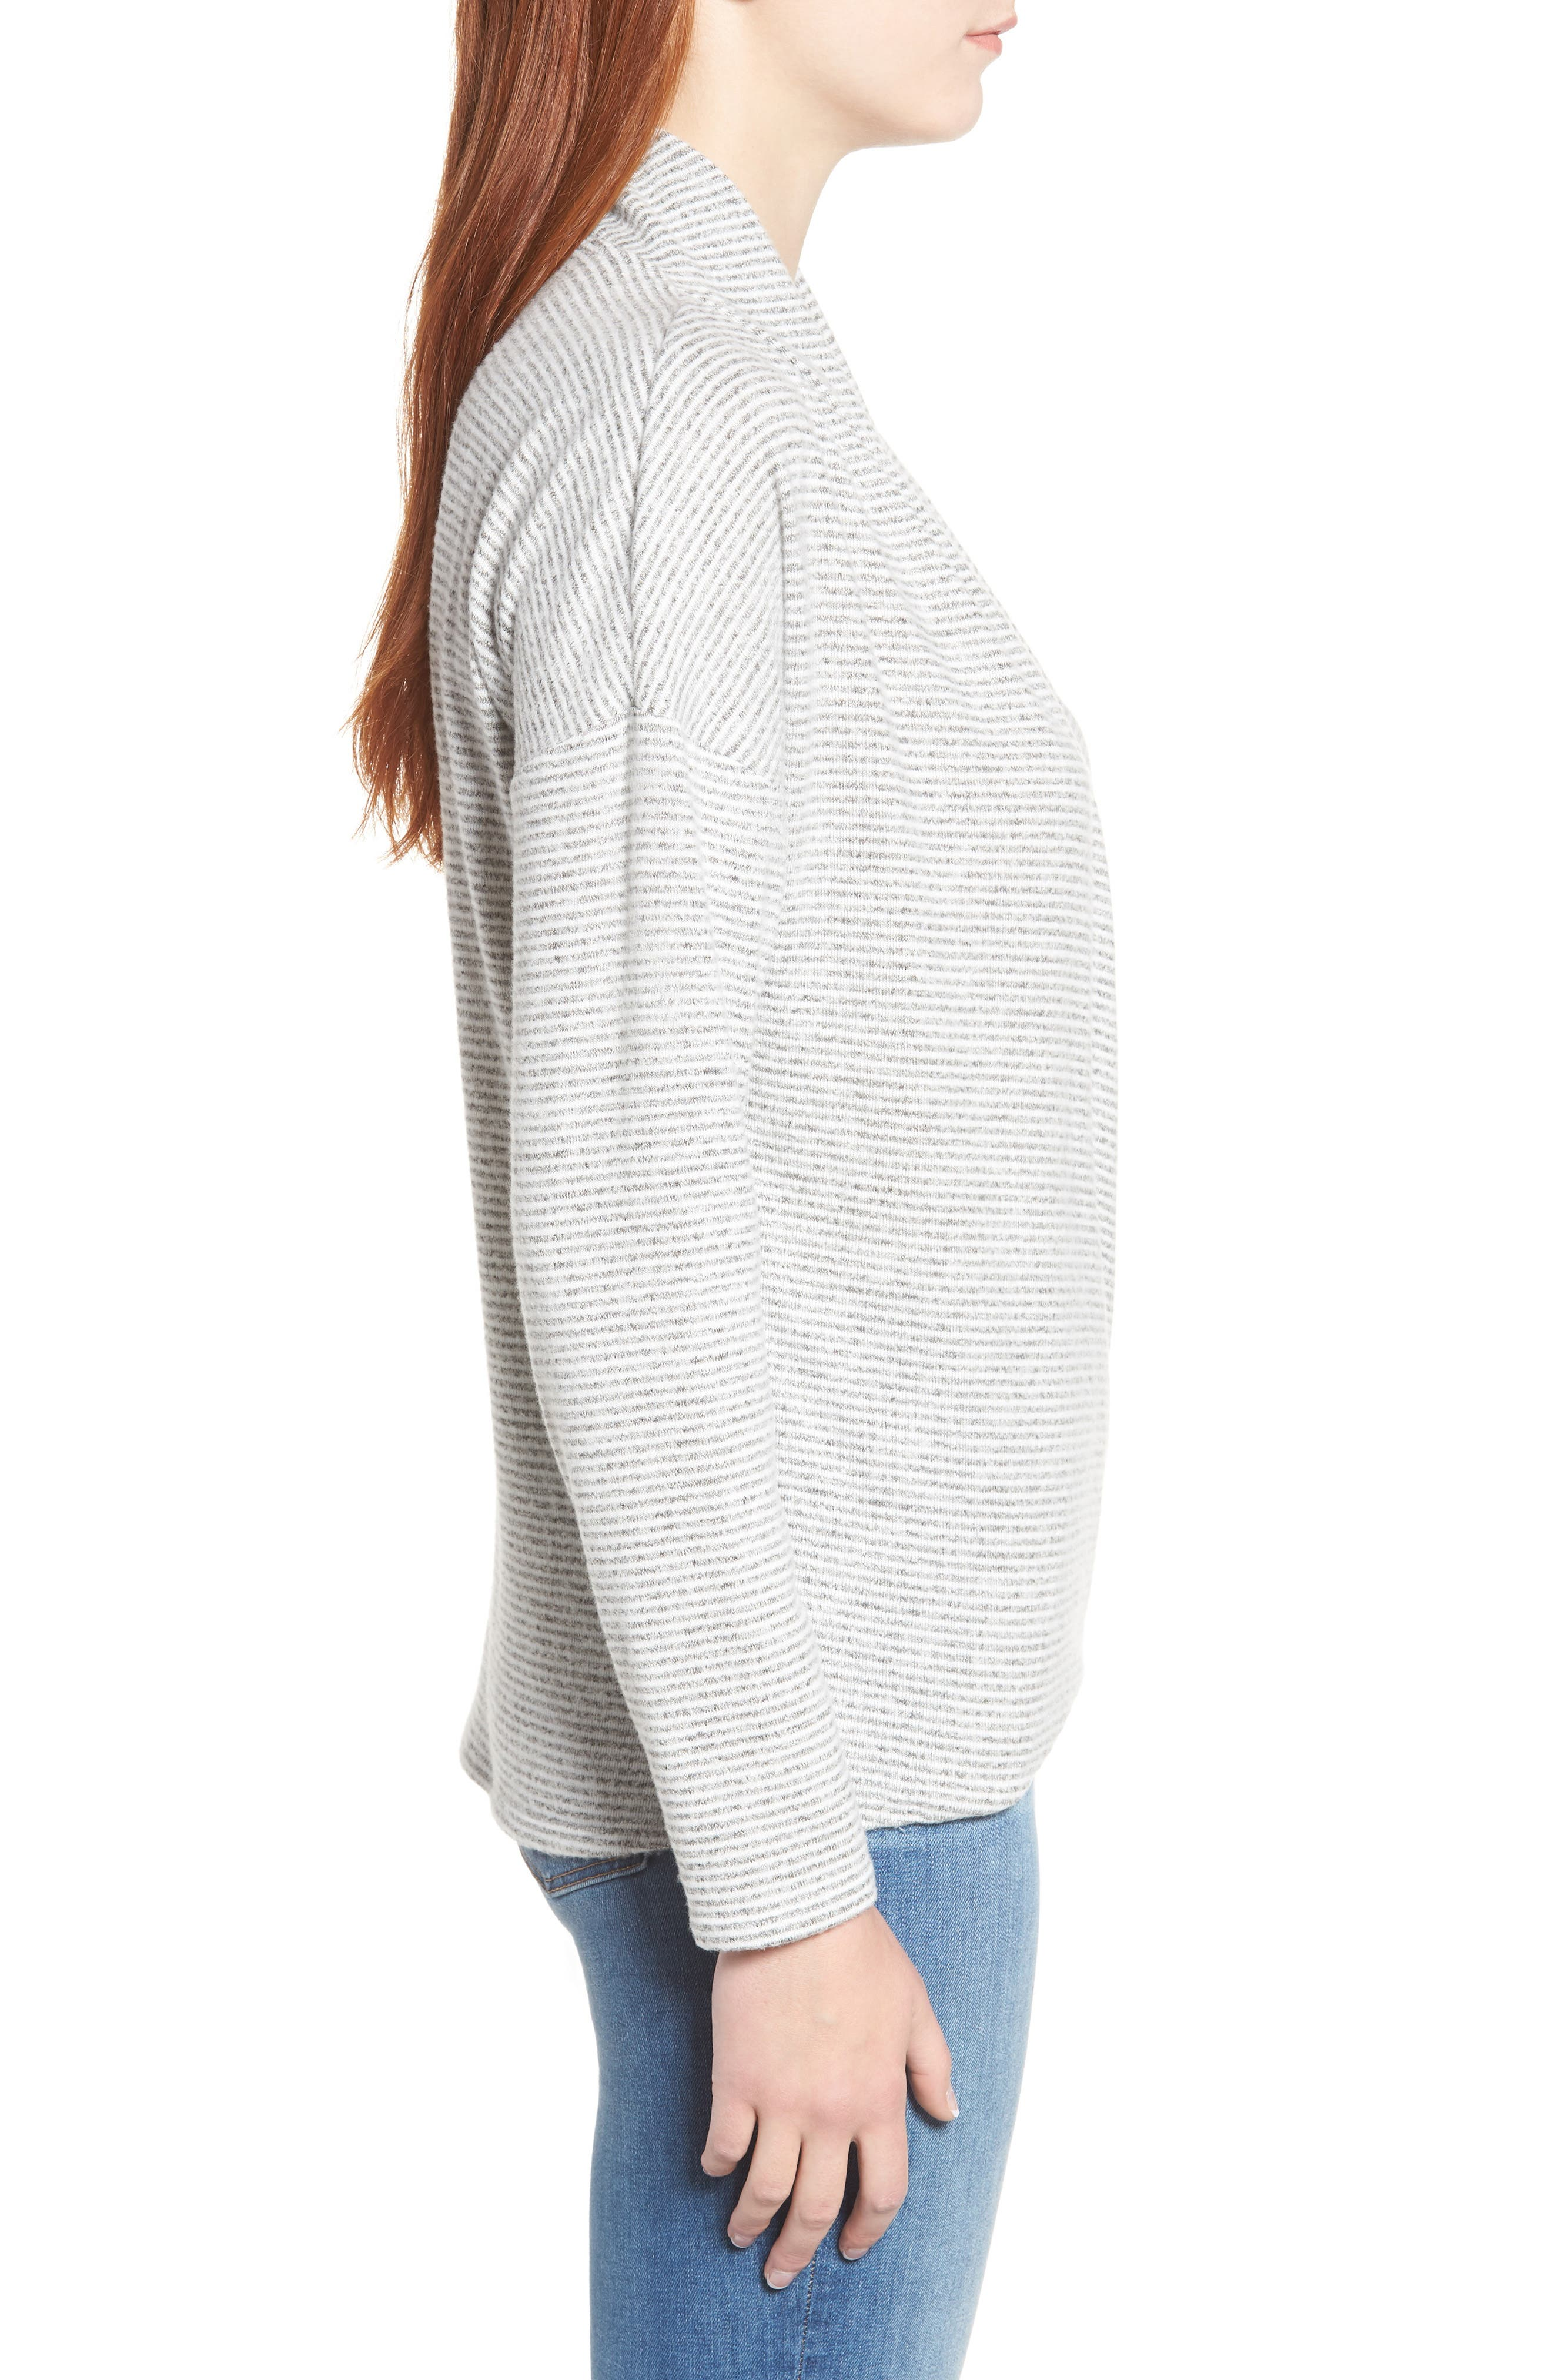 GIBSON,                             x Living in Yellow Diana Cozy Knit Wrap Top,                             Alternate thumbnail 3, color,                             GREY/ IVORY